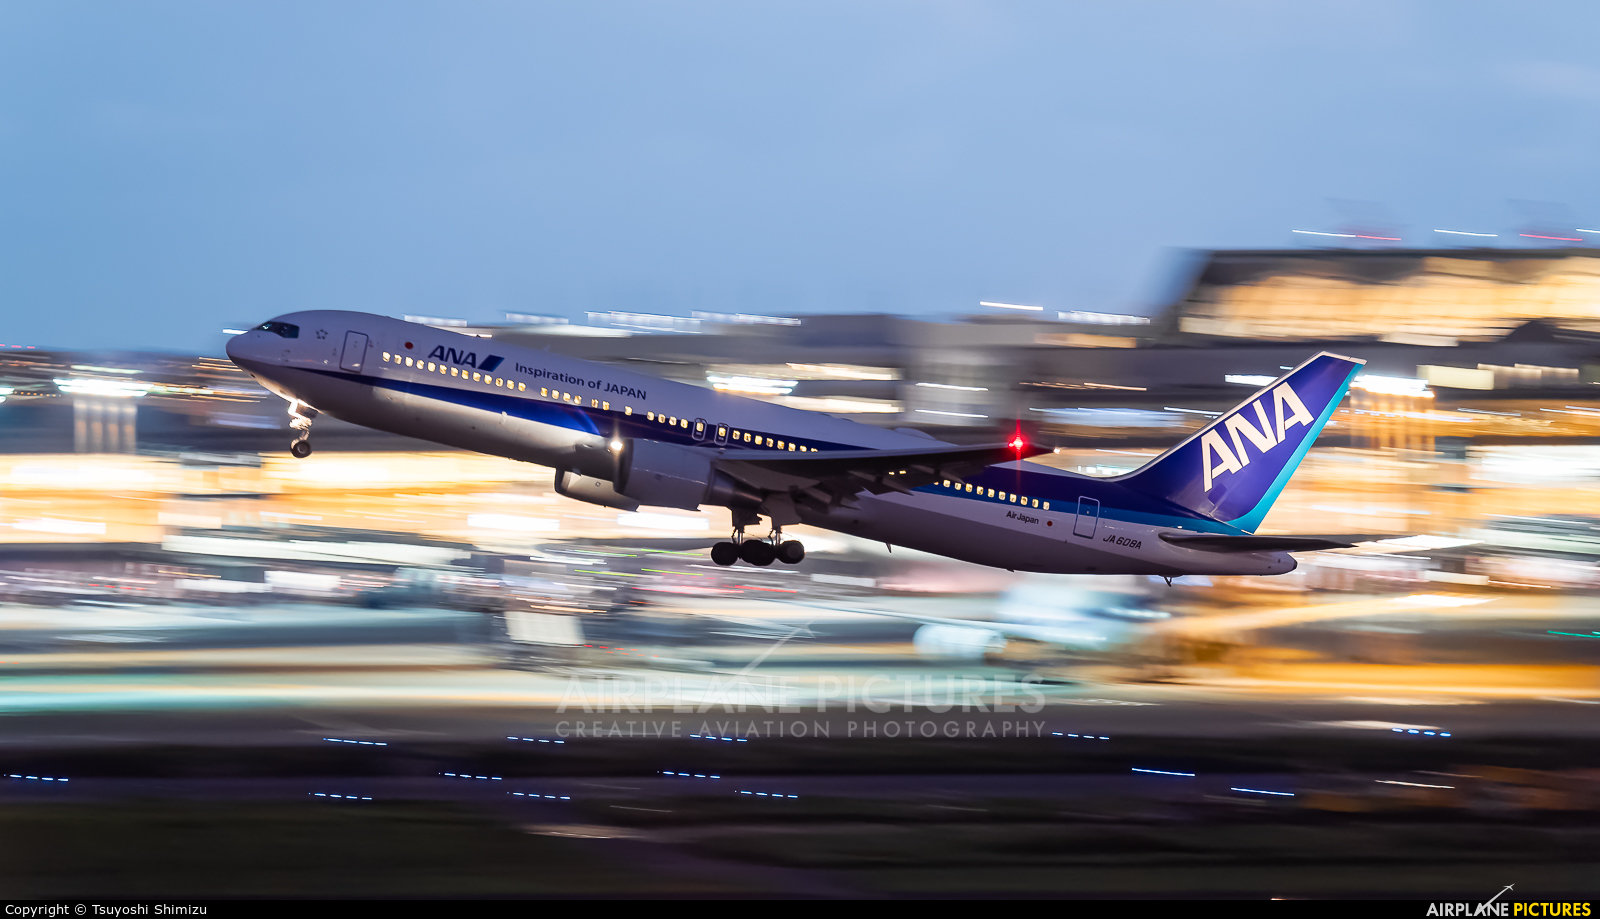 JA608A - ANA - All Nippon Airways Boeing 767-300ER at Tokyo